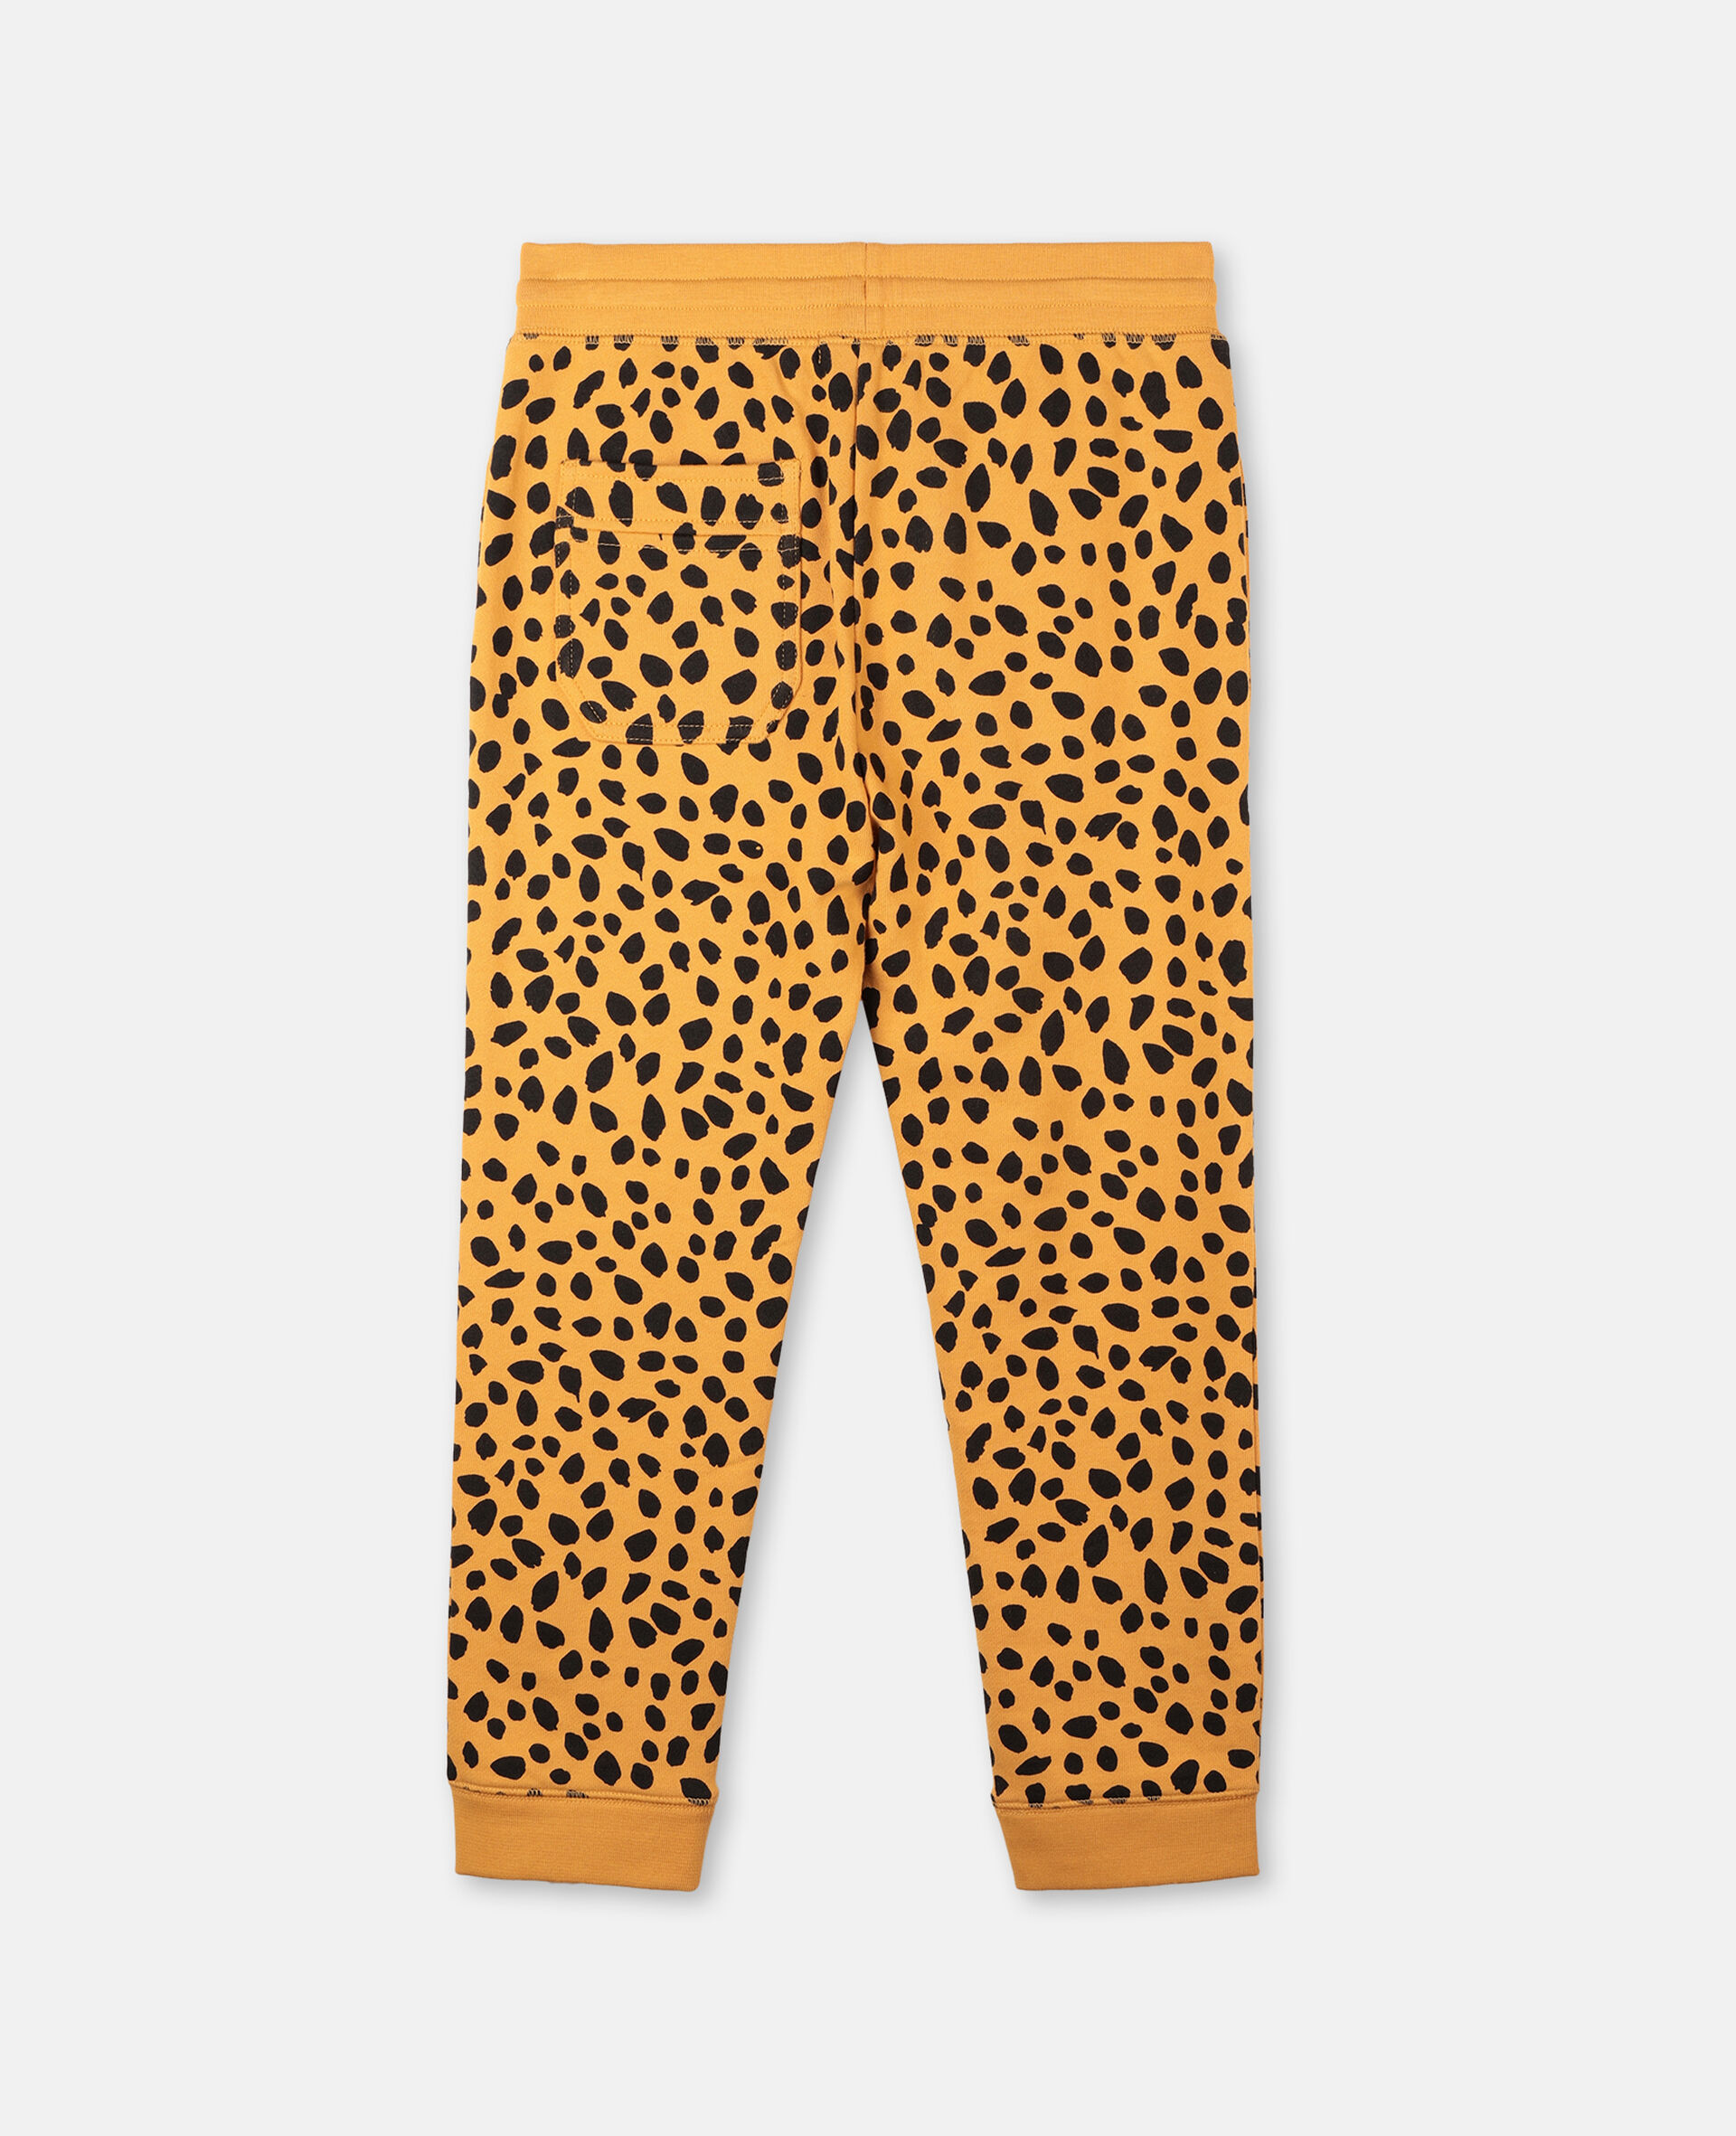 Cheetah Dots Cotton Joggers  -Multicolour-large image number 3